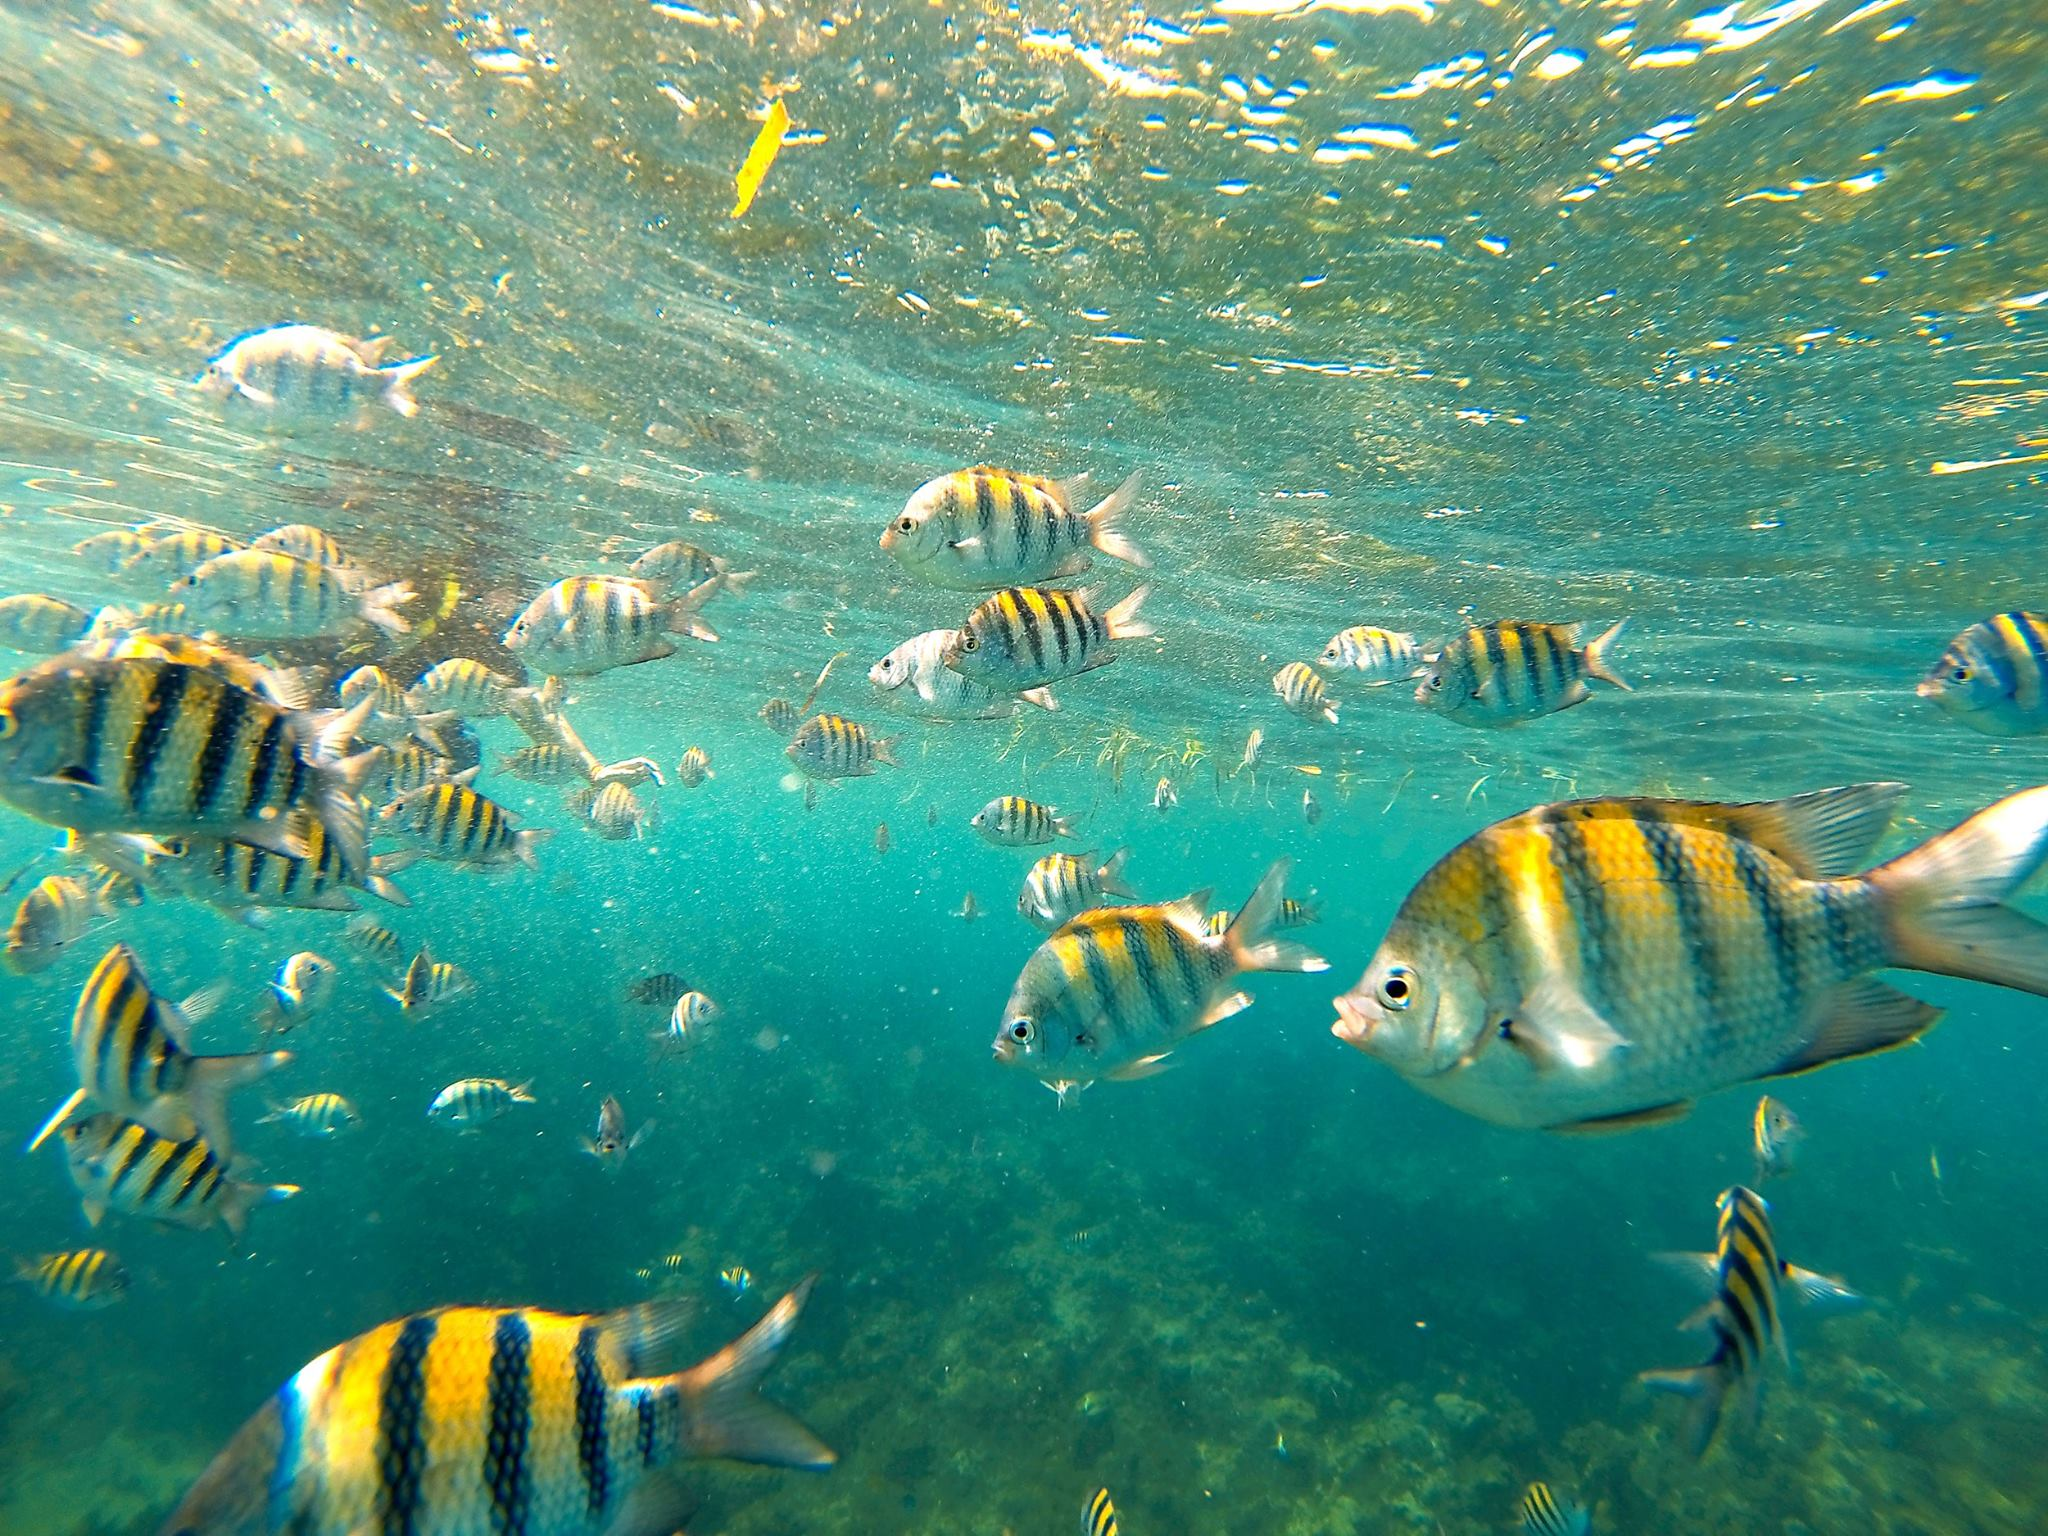 We swam with ALL the fishes. Snorkelling in Montego Bay, Jamaica. (Photo by Dylan).